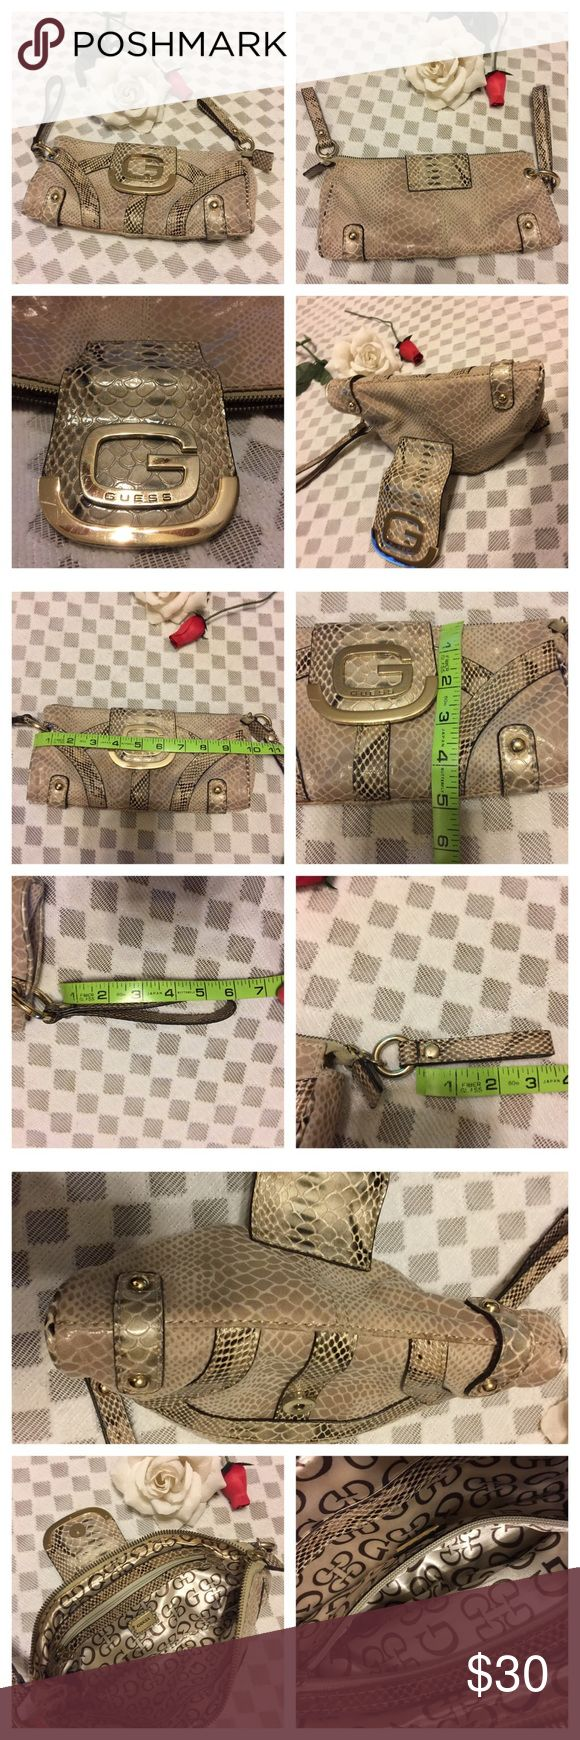 ***Guess***Snake Like Skin Clutch ***Guess***Snake-like Skin Clutch. Inside you have an inner zipper and one wall pocket. Size is as seen in photos attached here. Please see minor imperfection in photo - cratch on G hardware in front of bag and brown mark at zipper ends not seen after zip-up. Nonetheless, clutch is very clean. No hold and No trades. Guess Bags Clutches & Wristlets